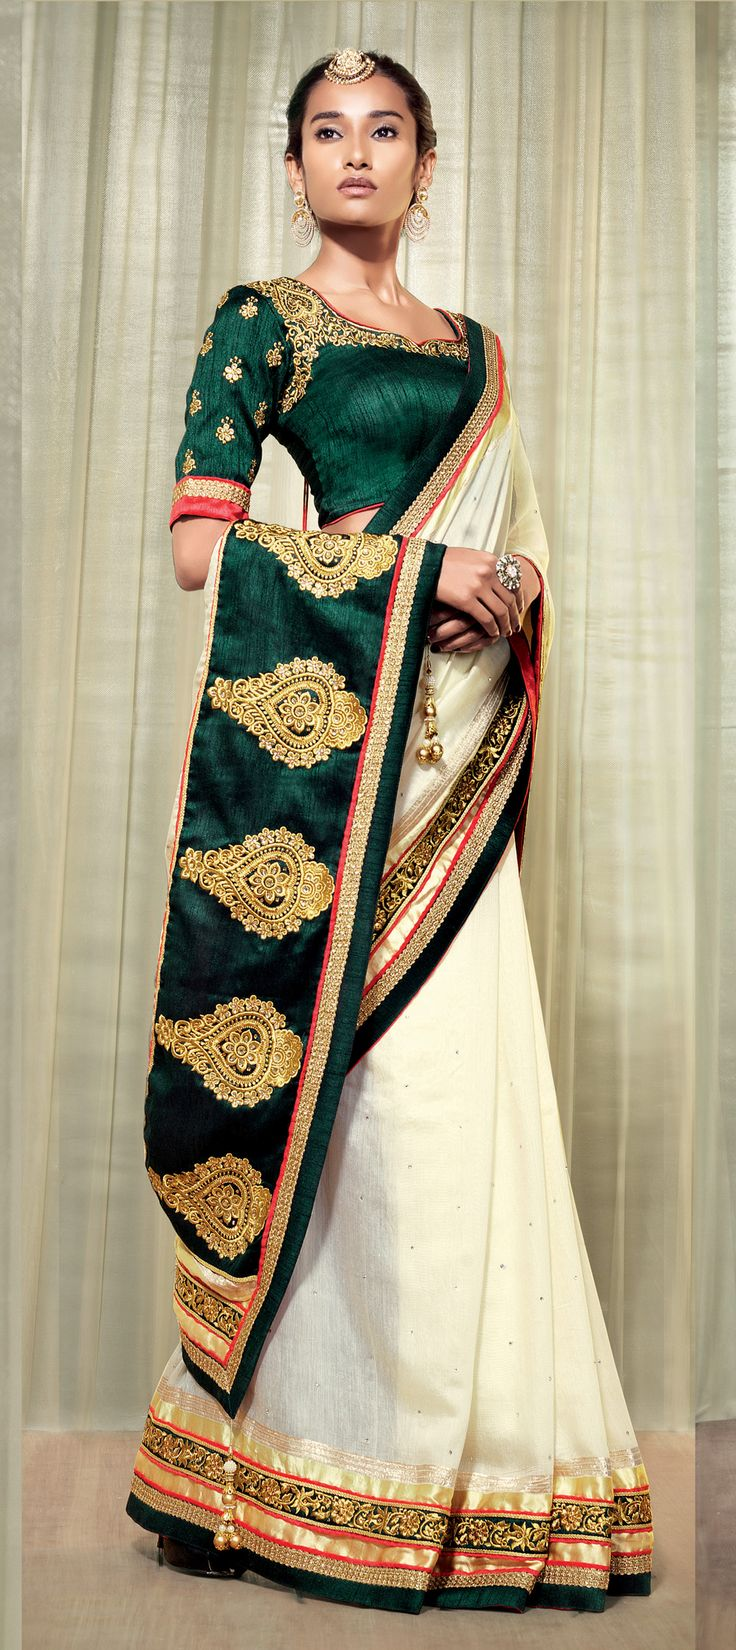 151820: White and Off White color family Saree with matching unstitched blouse.